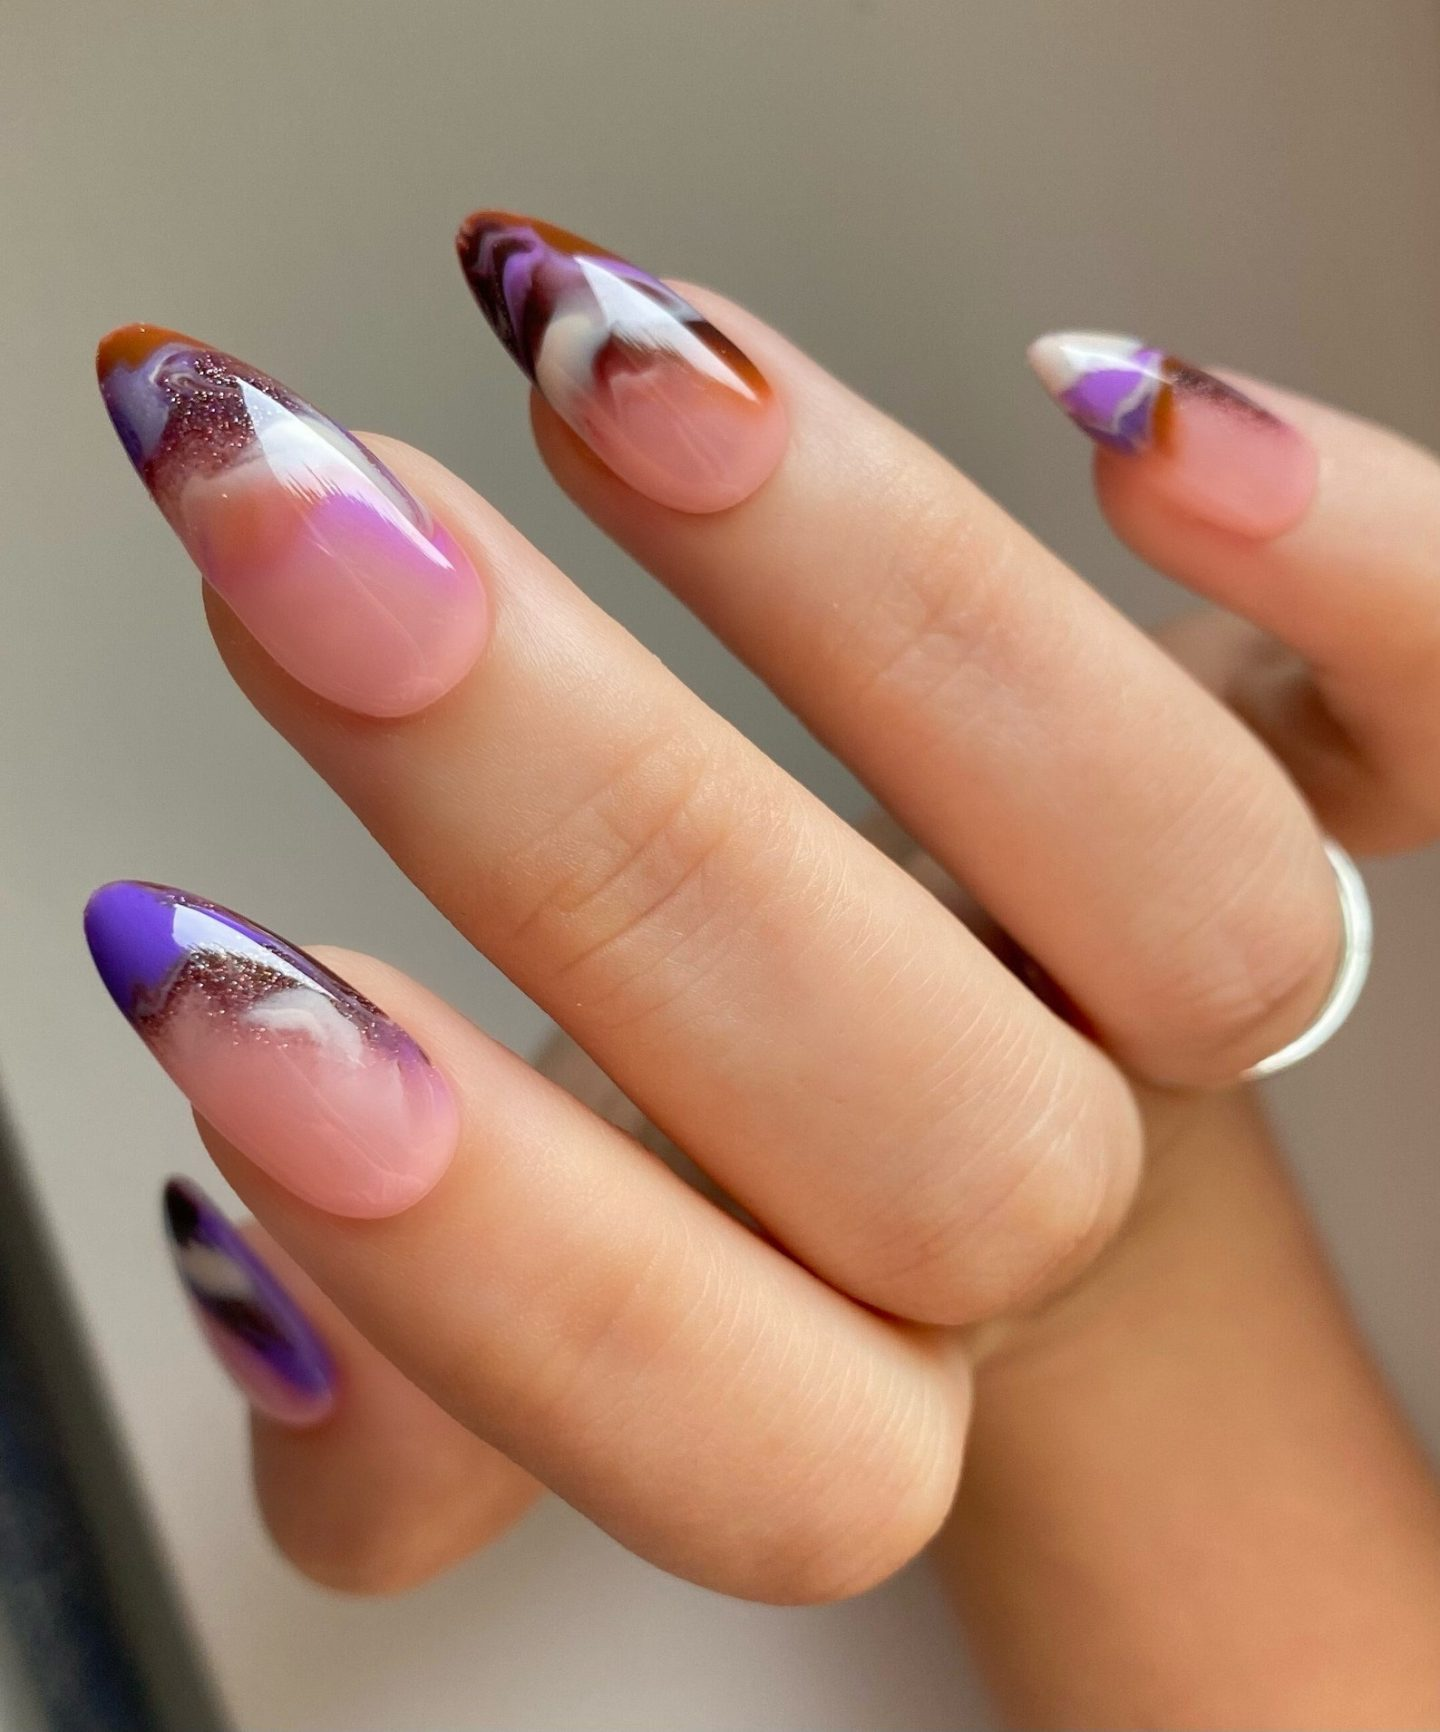 Cute purple and brown almond nails with smoke effect